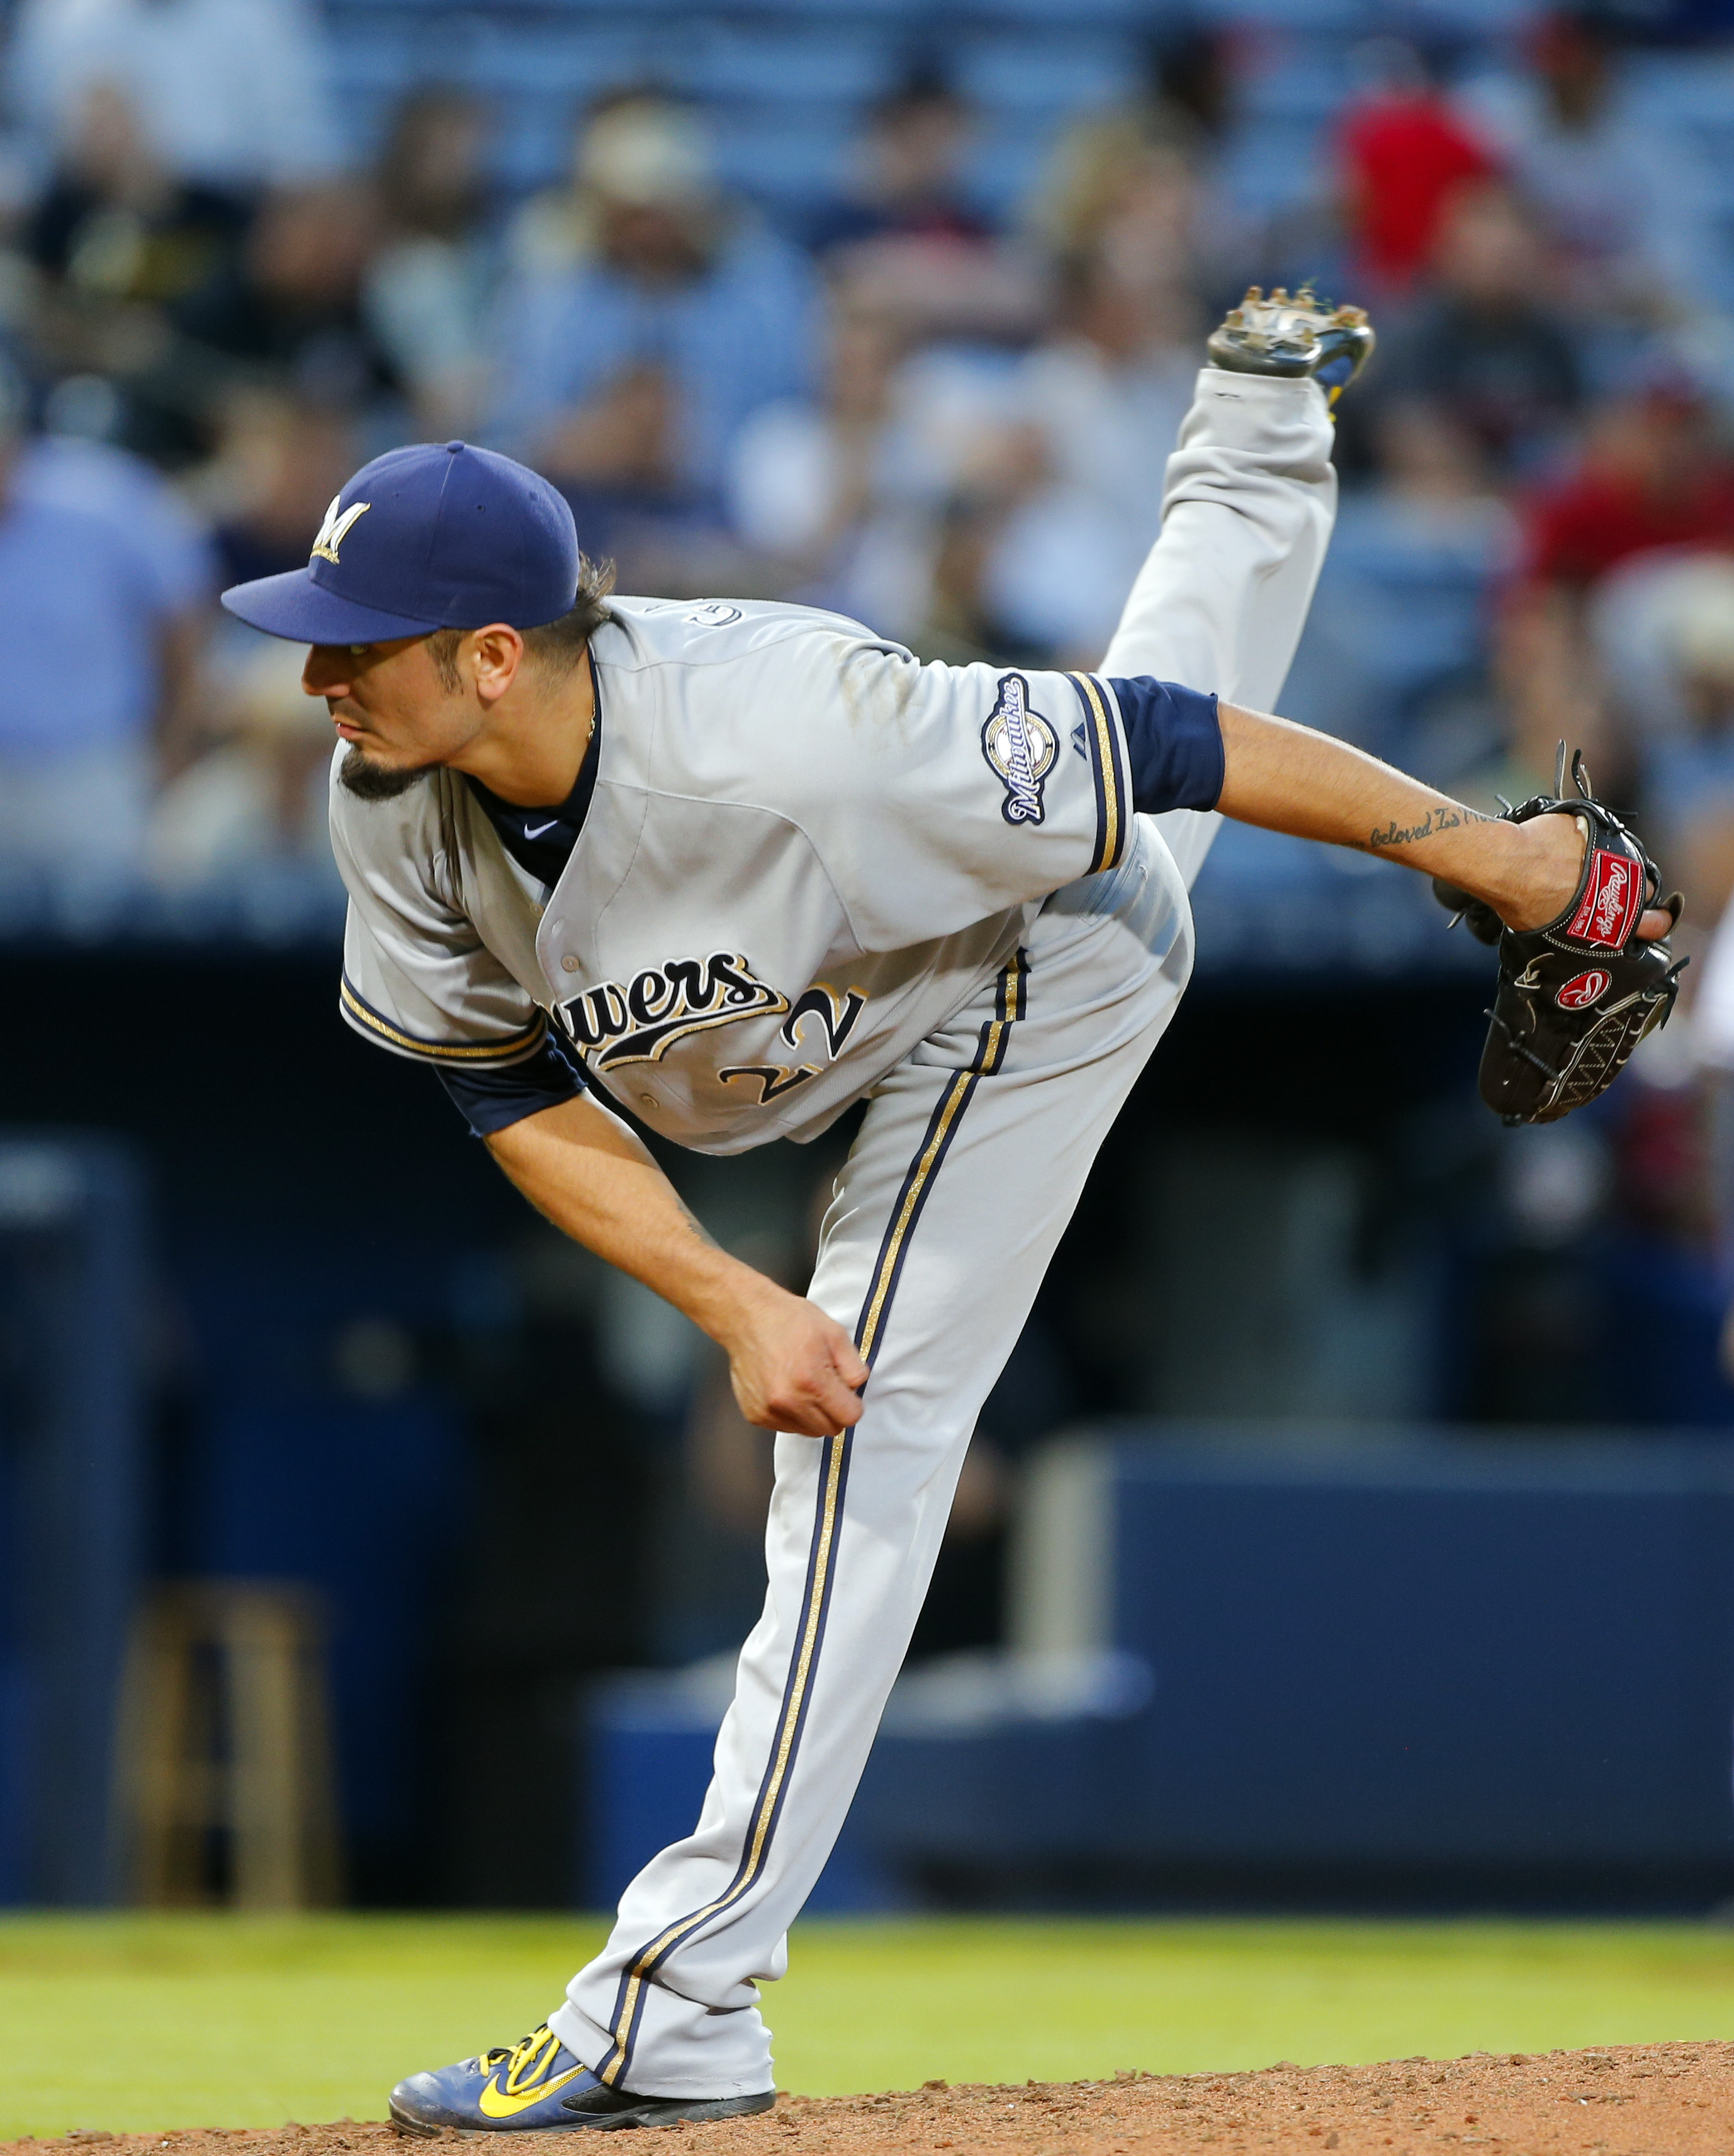 Milwaukee Brewers starting pitcher Matt Garza follows through on a pitch during the fifth inning of a baseball game against the Atlanta Braves on Thursday, May 21, 2015, in Atlanta. (AP Photo/John Bazemore)